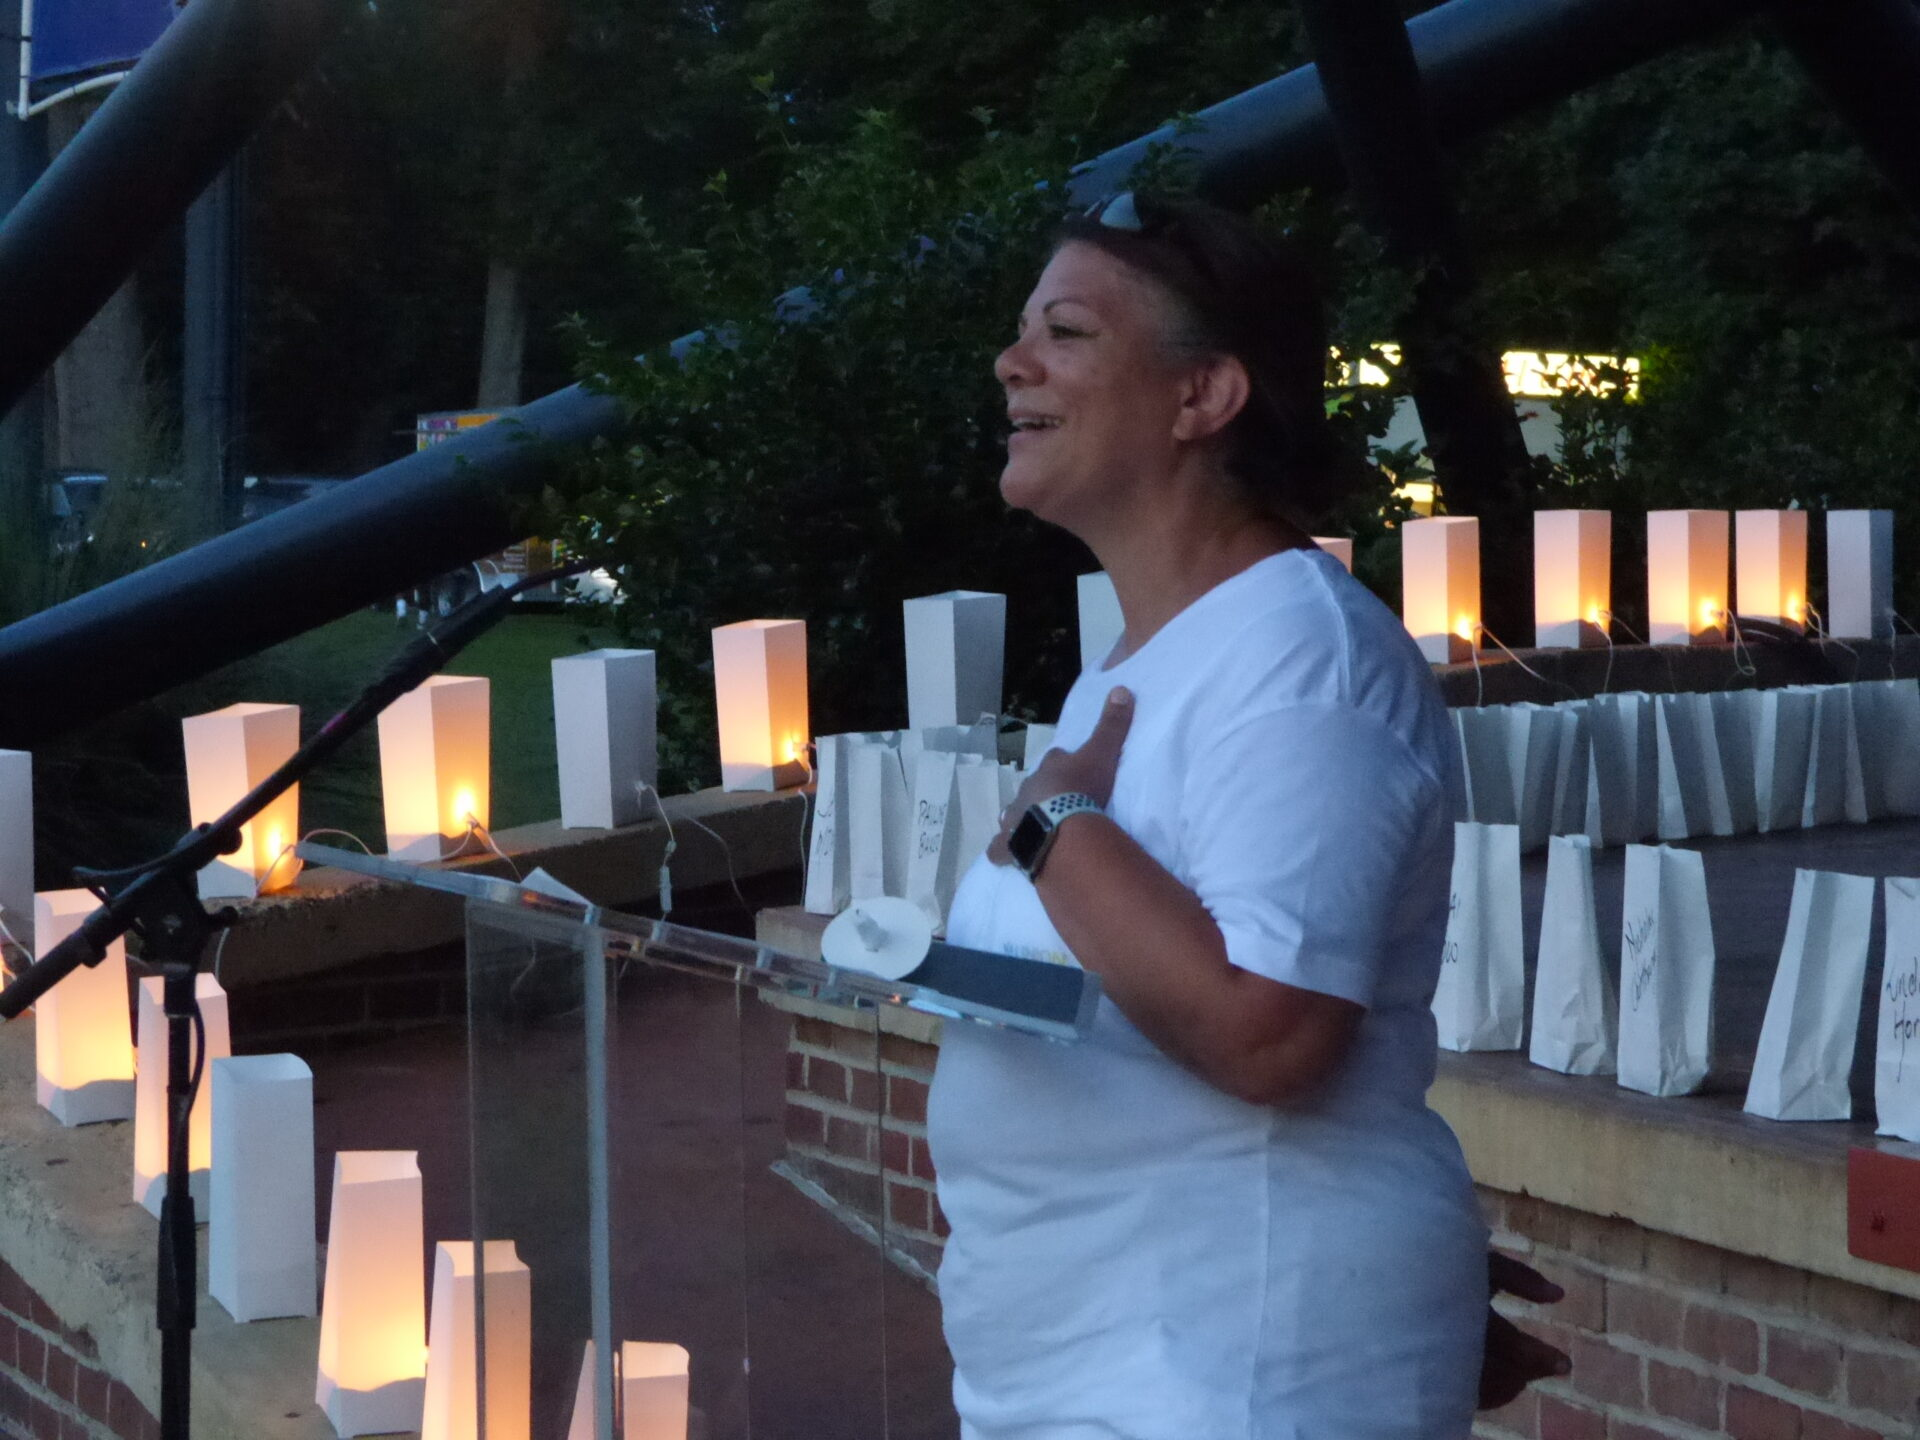 """Jackie Concepcion, Vice President of Community Impact, Union Community Care, thanks the crowd at the conclusion of """"A Day of Healing"""" at Longs Park on Thursday, Aug. 12, 2021. (Photo: Tim Stuhldreher)"""